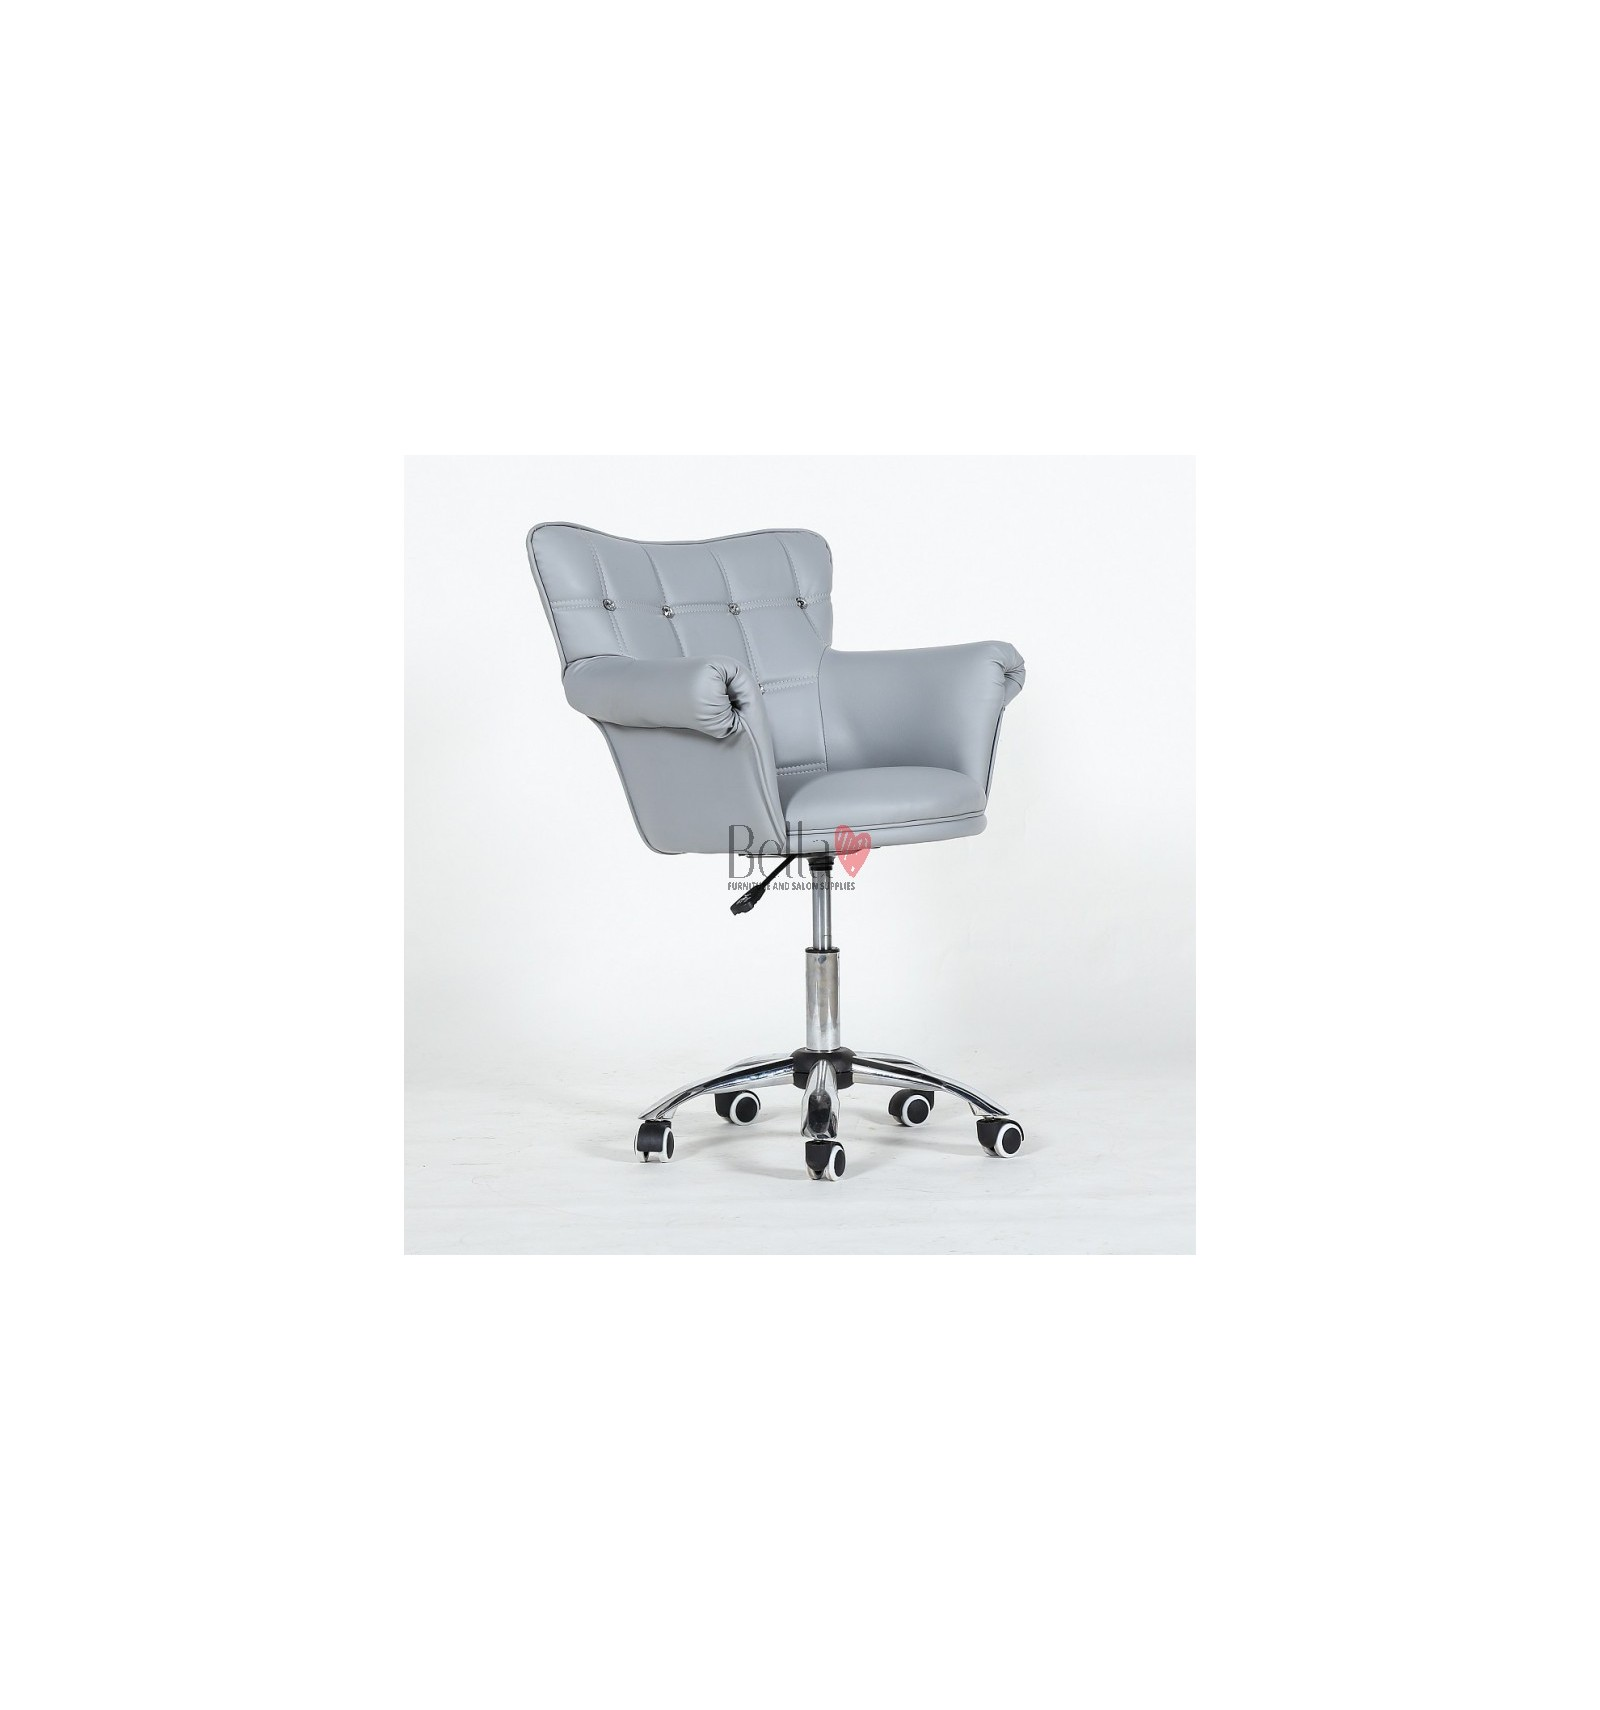 Stupendous Chair On Wheels Grey Bfhc804Ck Home Interior And Landscaping Ologienasavecom